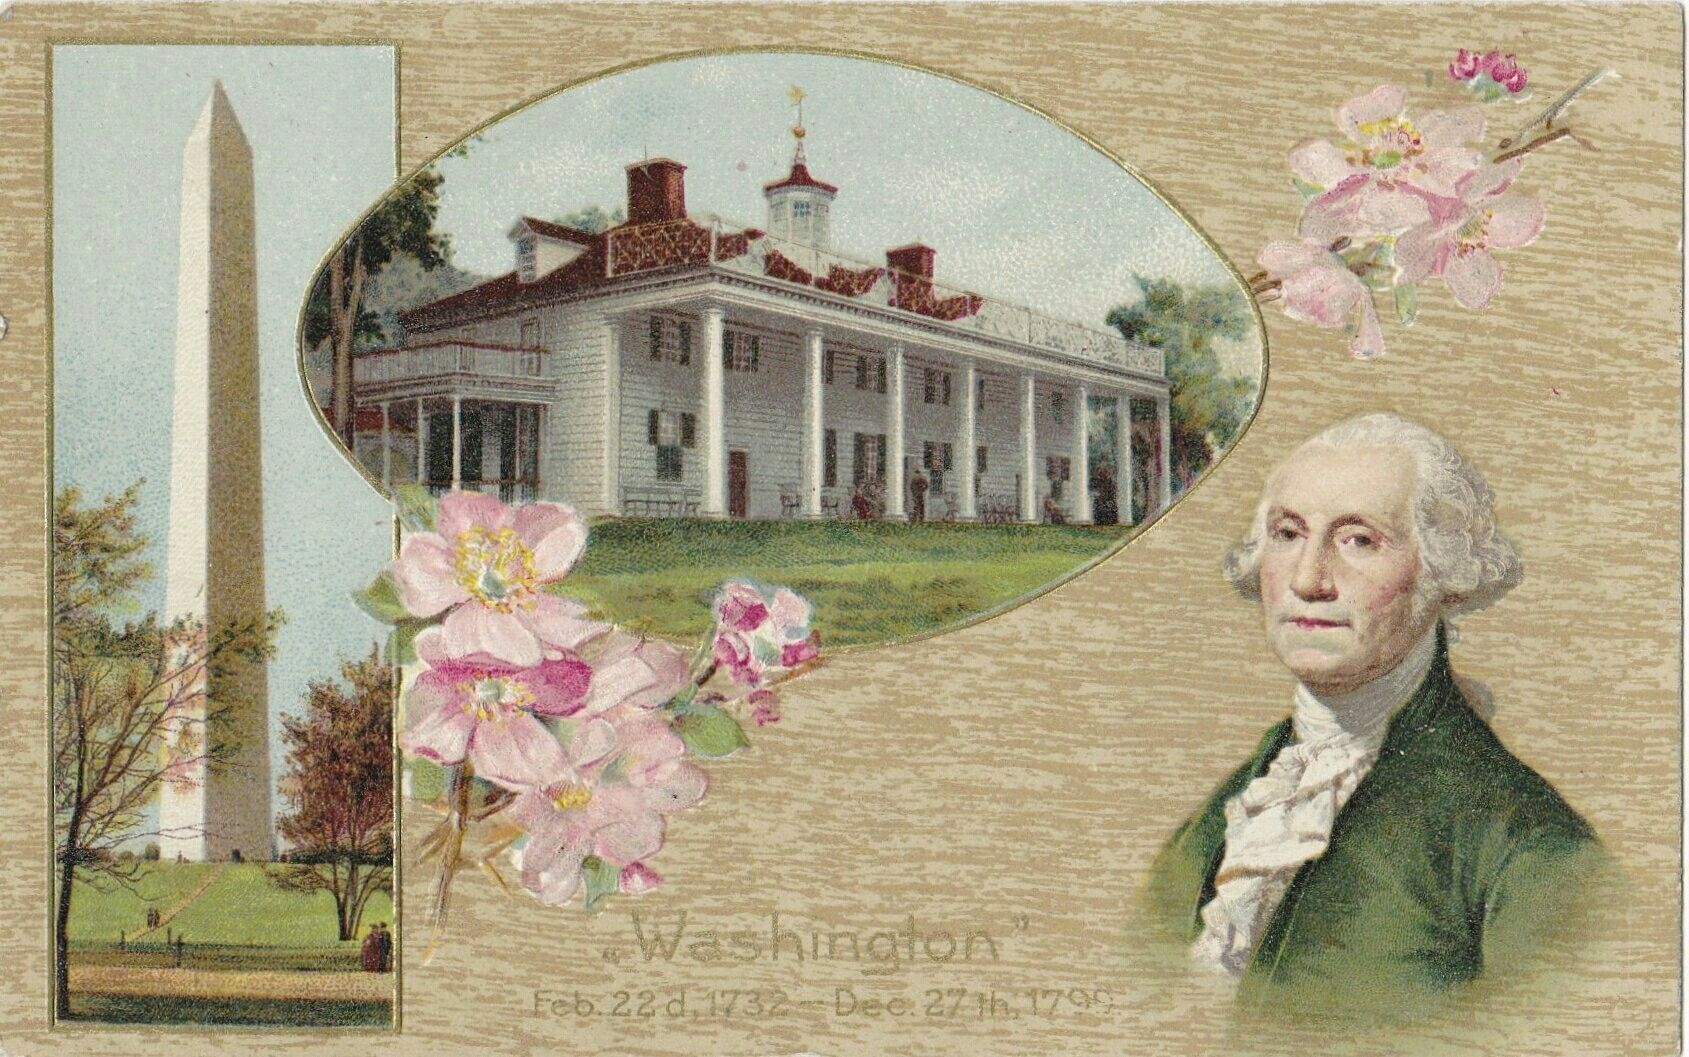 Washington S Birthday 1910s Antique Postcard February 22 George